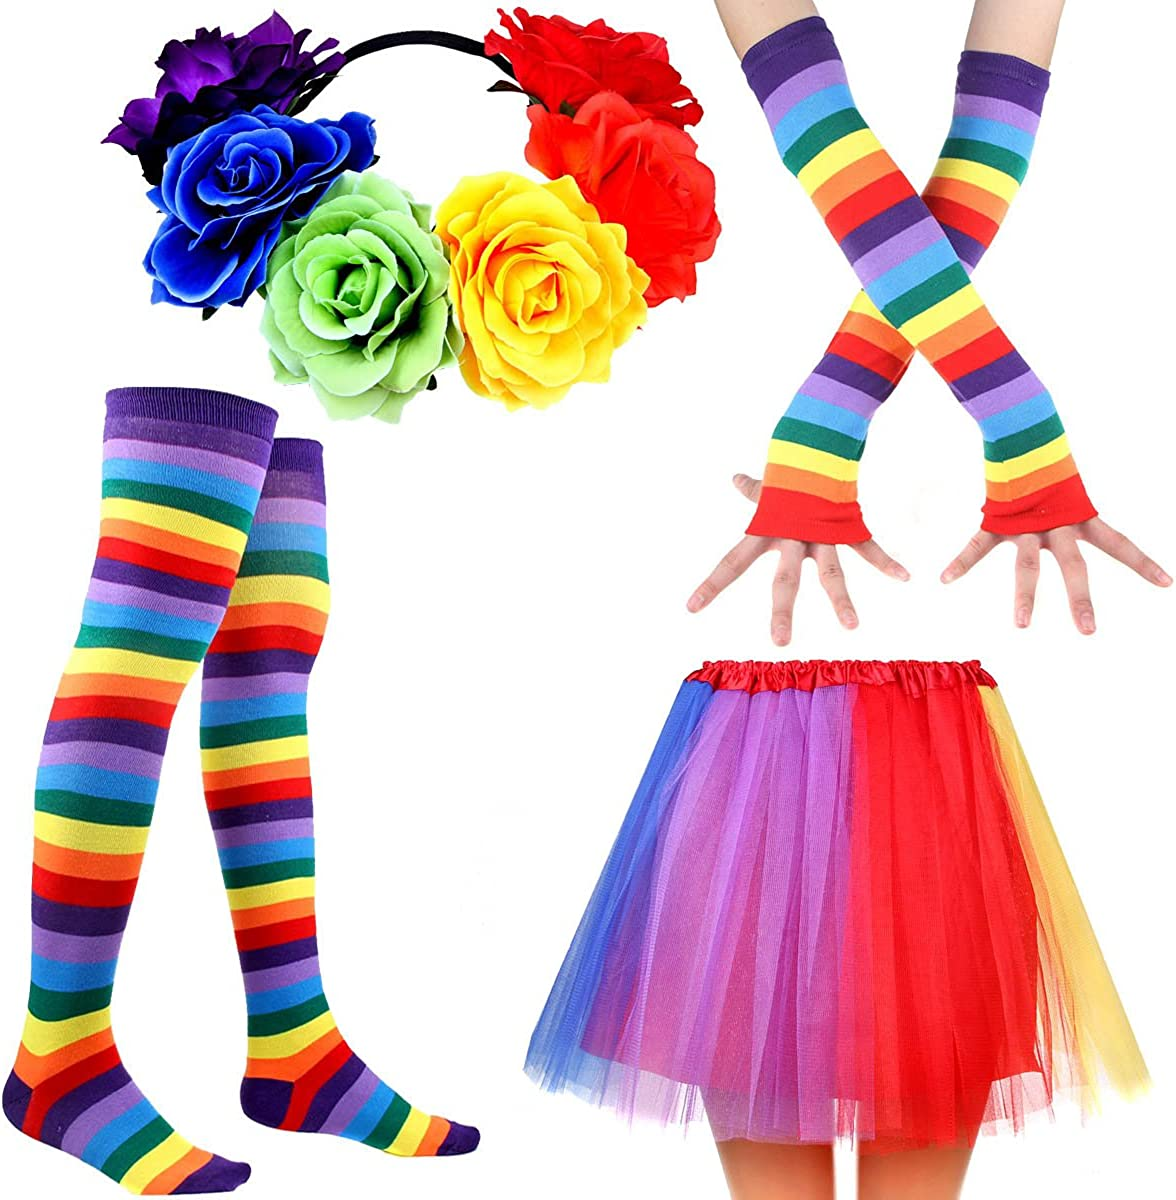 IETANG Womens Rainbow Long Gloves Socks and 3 Layered Tulle Tutu Skirt Party Accessory Set